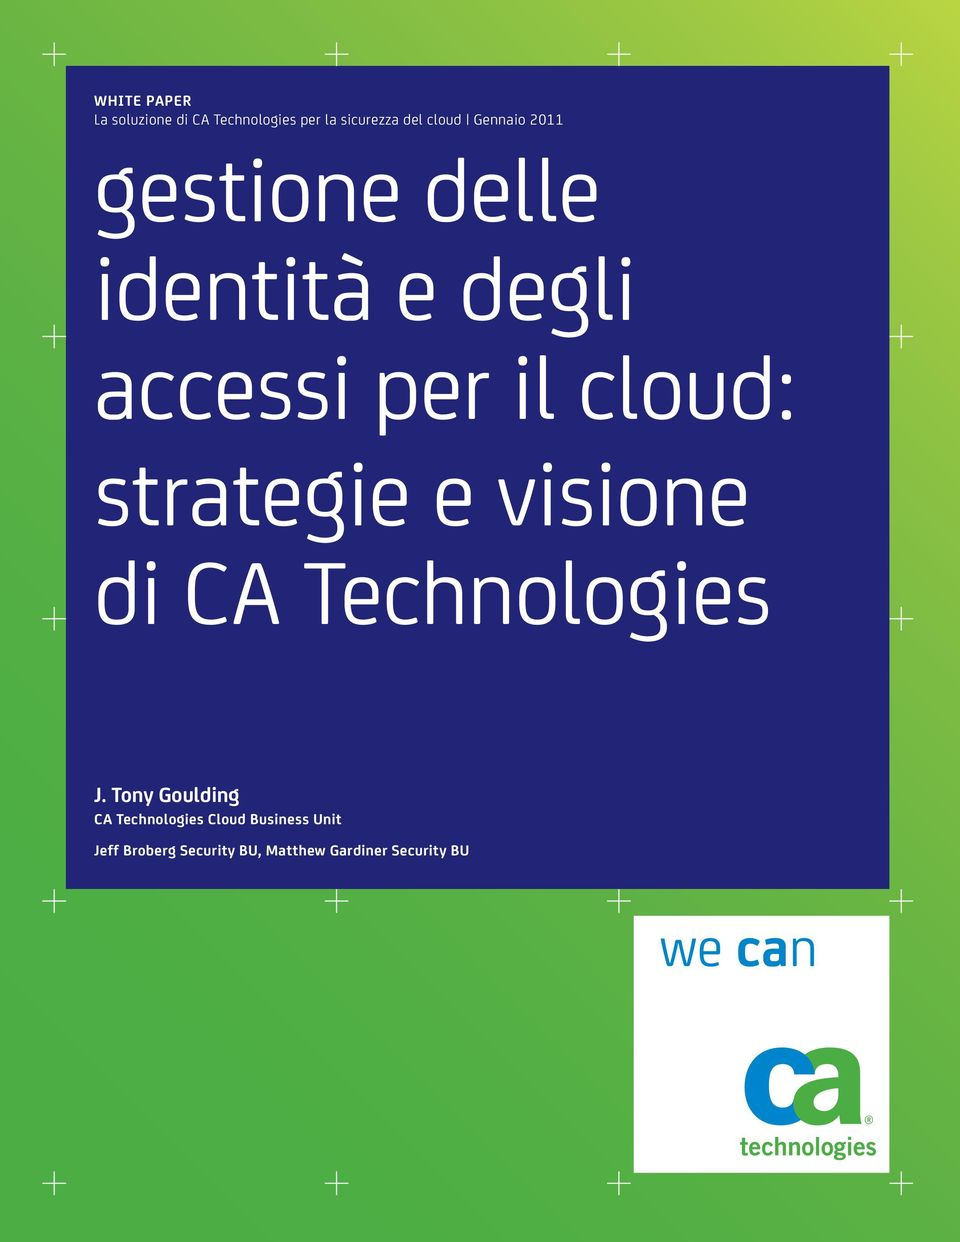 strategie e visione di CA Technologies J.